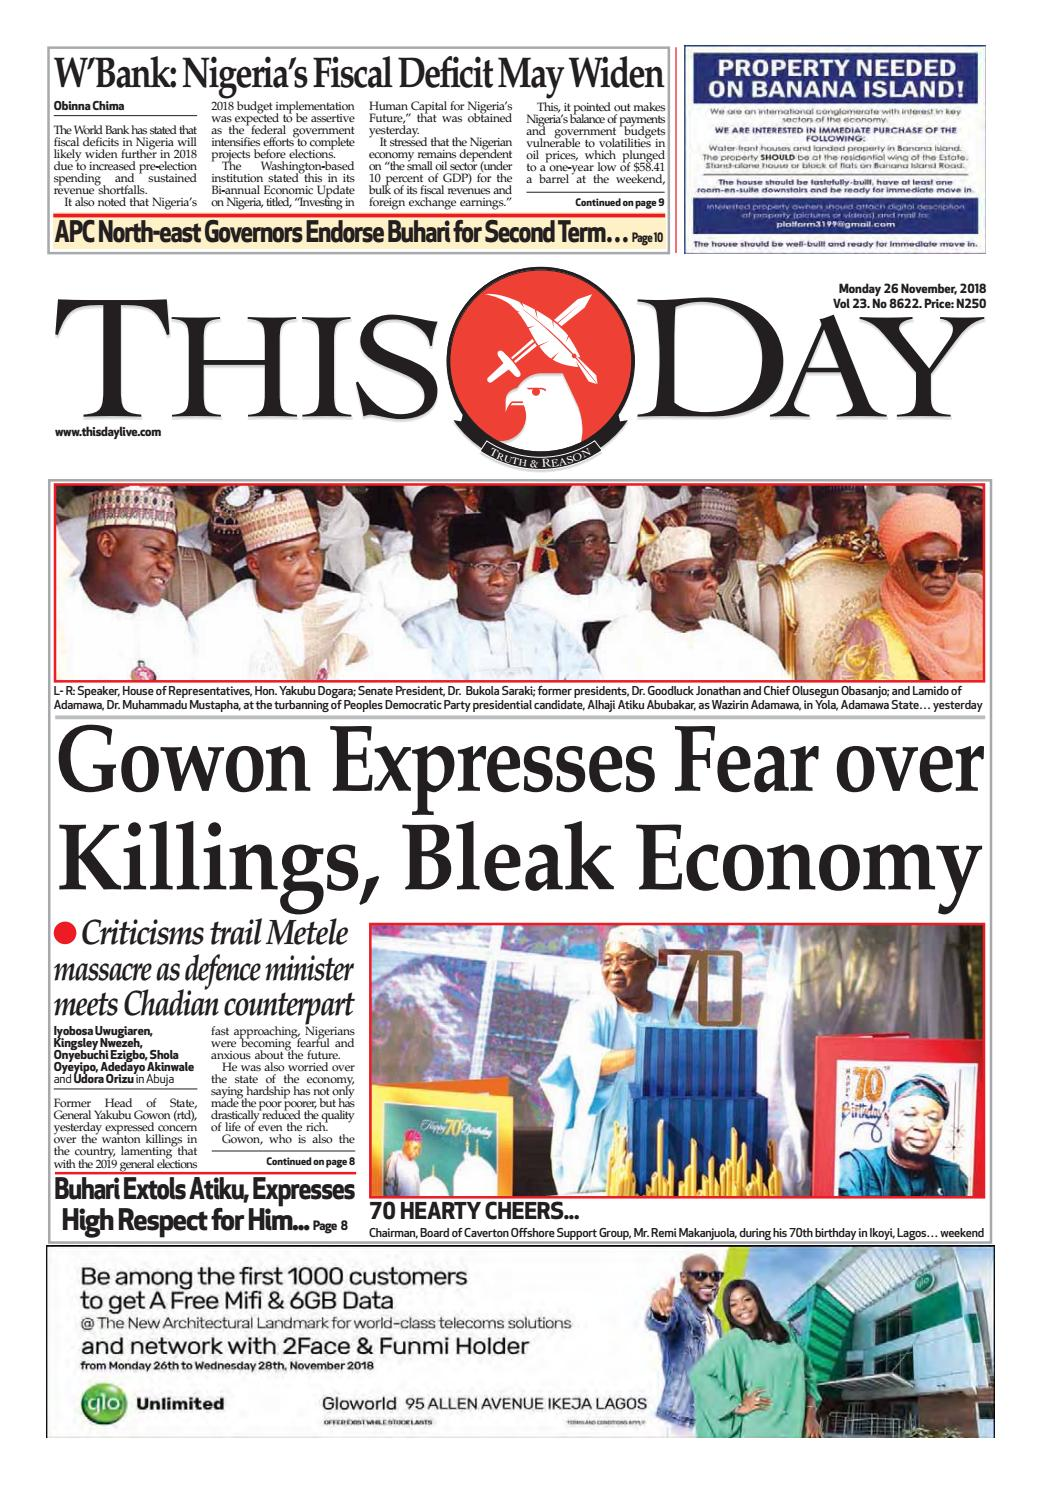 b0b118f1a28d MONDAY 26TH NOVEMBER 2018 by THISDAY Newspapers Ltd - issuu